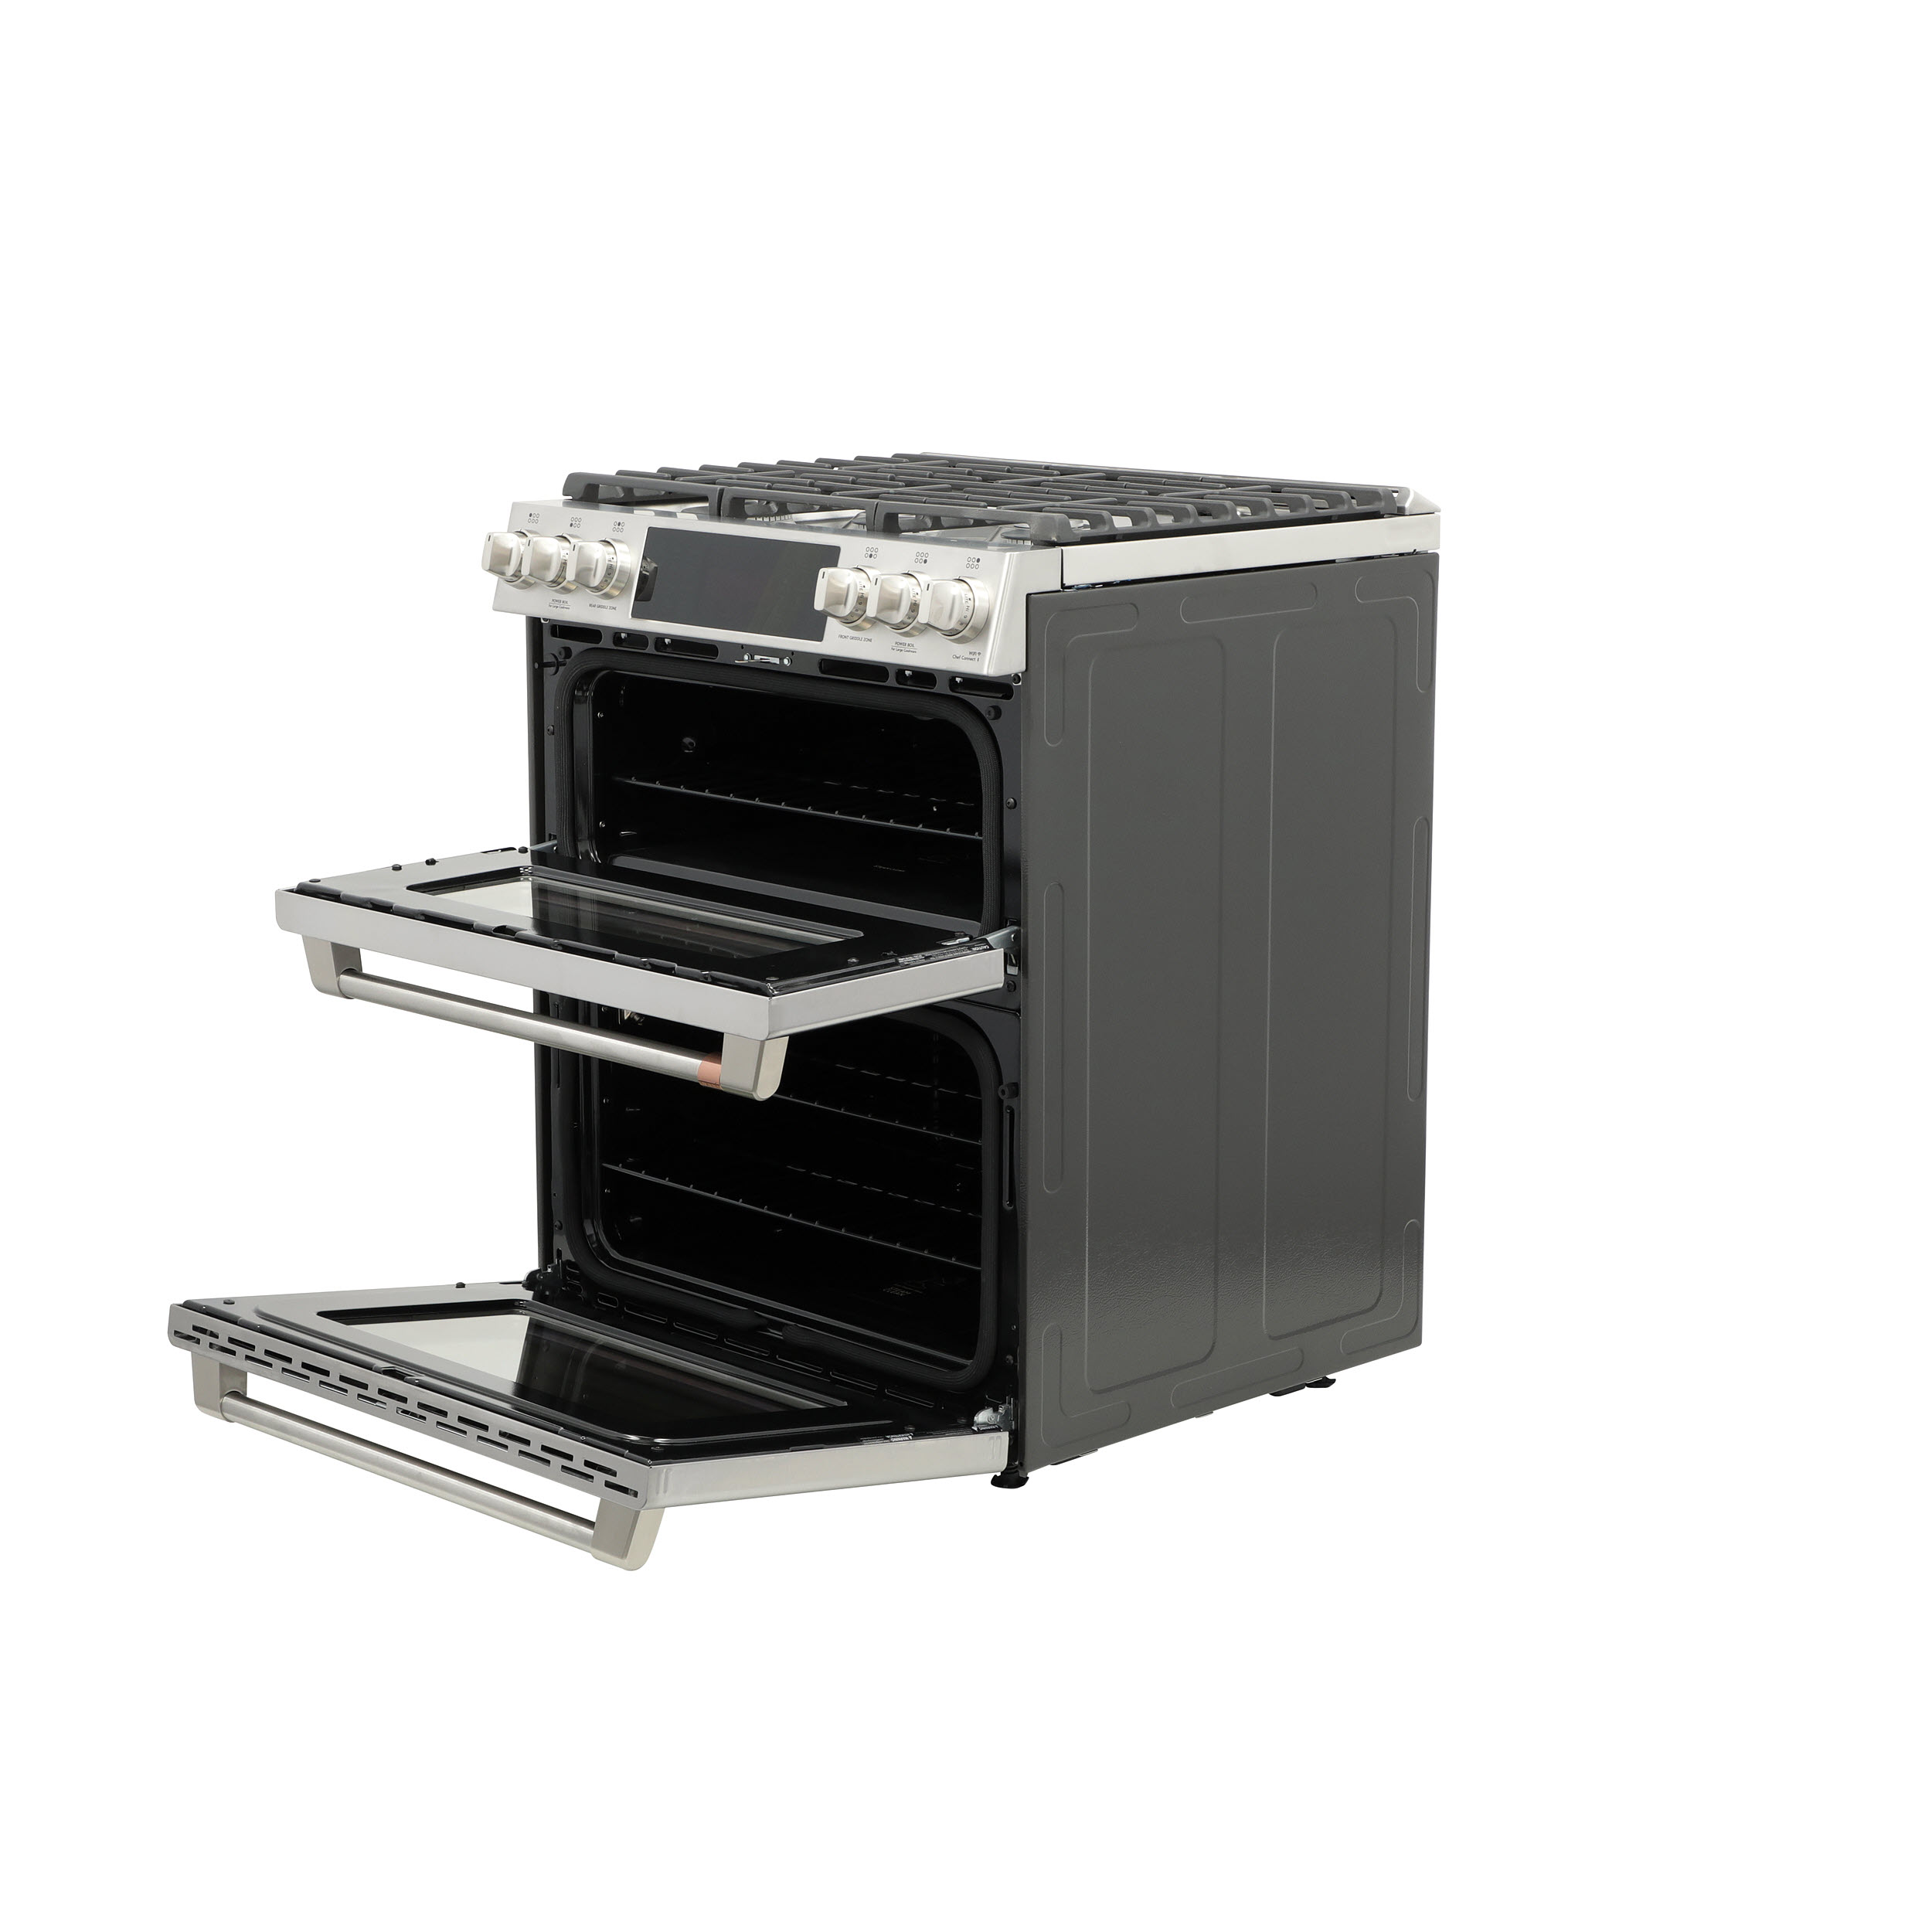 "Model: CGS750P2MS1 | Cafe Café™ 30"" Smart Slide-In, Front-Control, Gas Double-Oven Range with Convection"